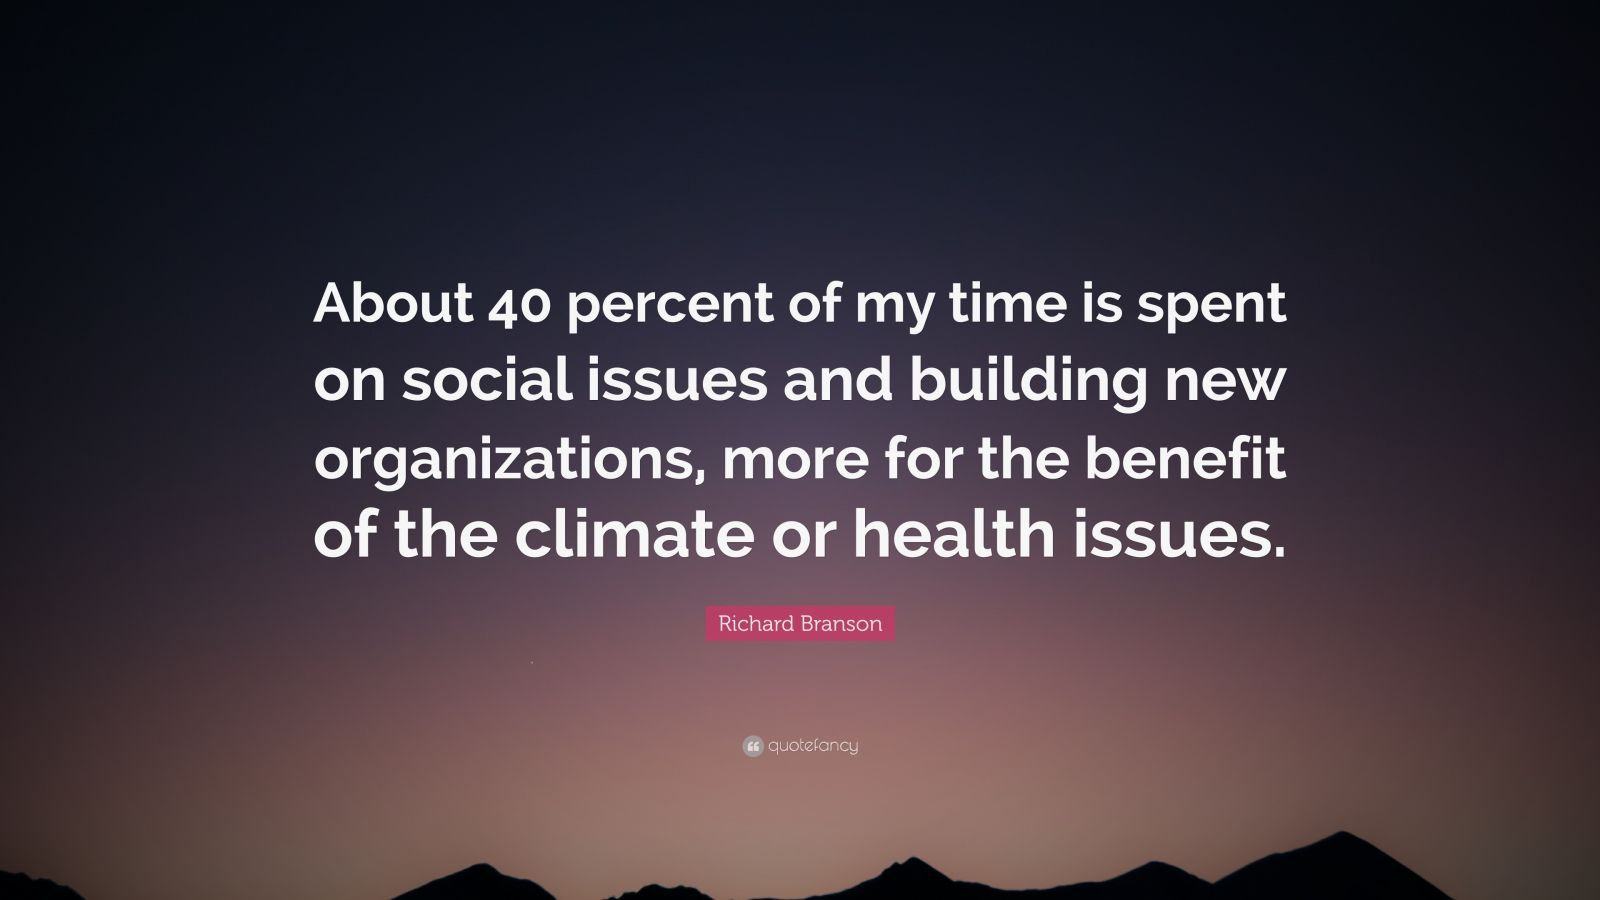 """Richard Branson Quote: """"About 40 percent of my time is spent on social issues and building new organizations, more for the benefit of the climate or health issues."""""""